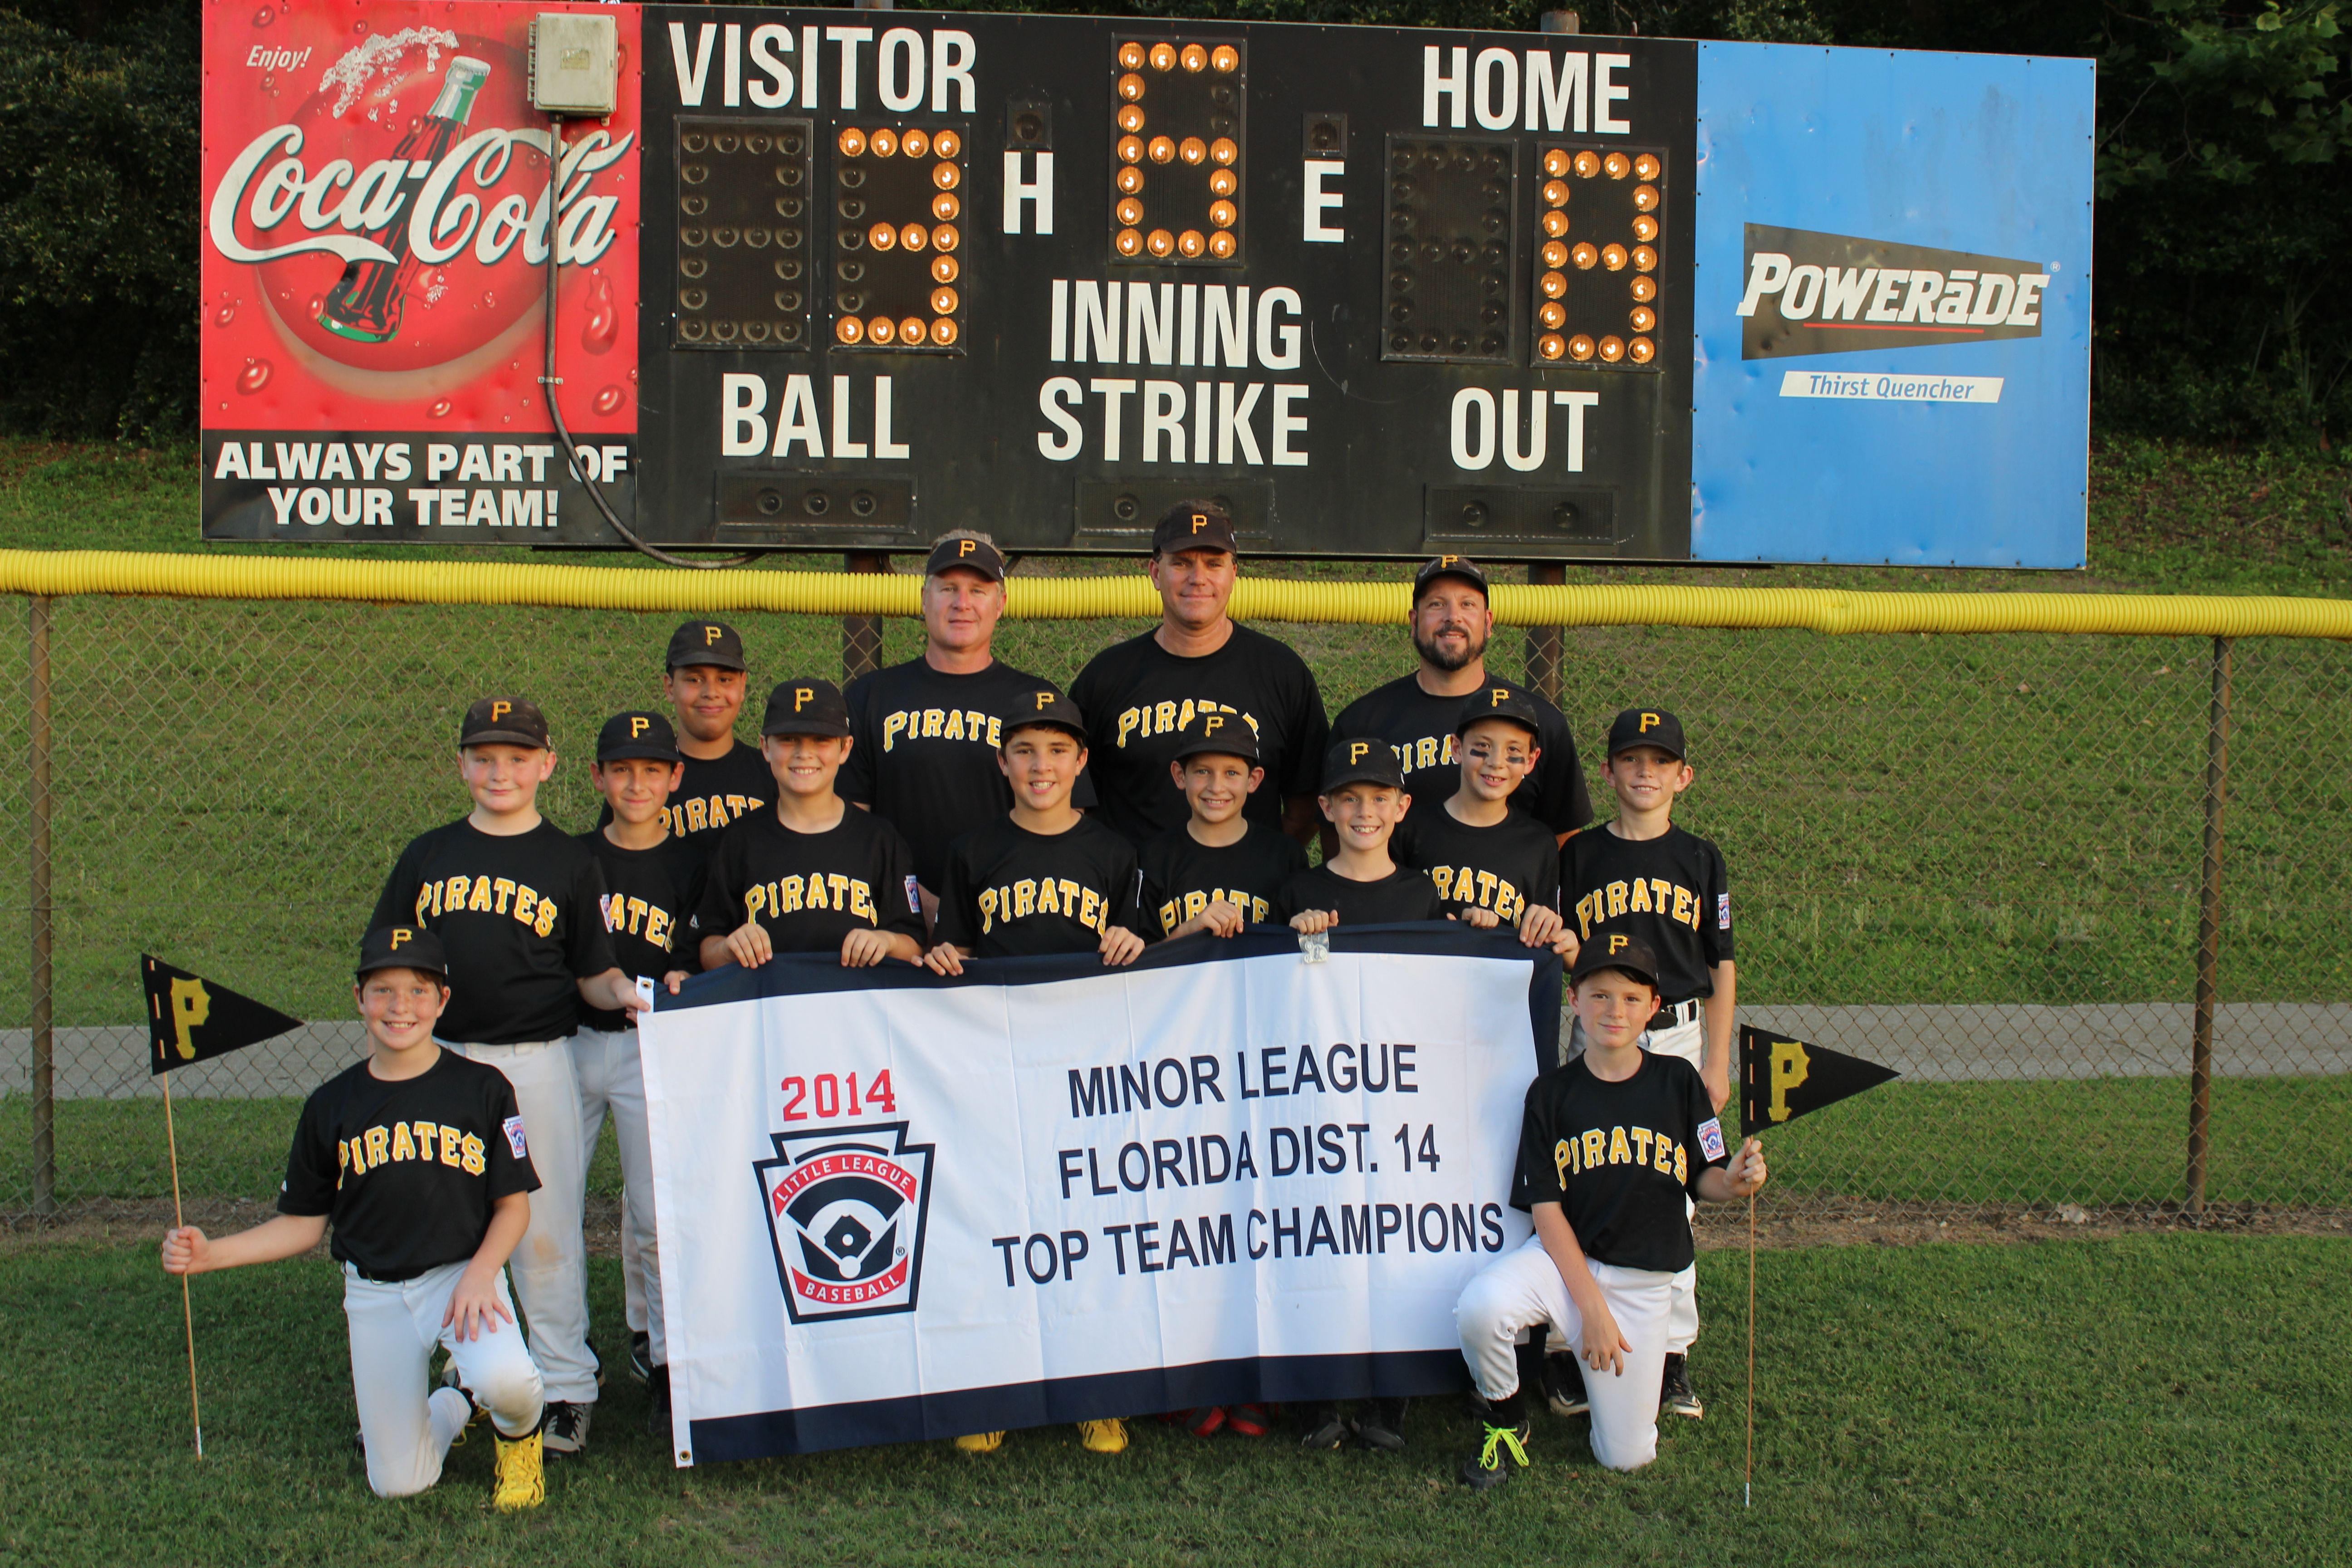 After Winning 2014 Aaa Top Team For The Windermere Little League Baseball Team The Wll Pirates Advanced To The Dis Little League Baseball Little League League